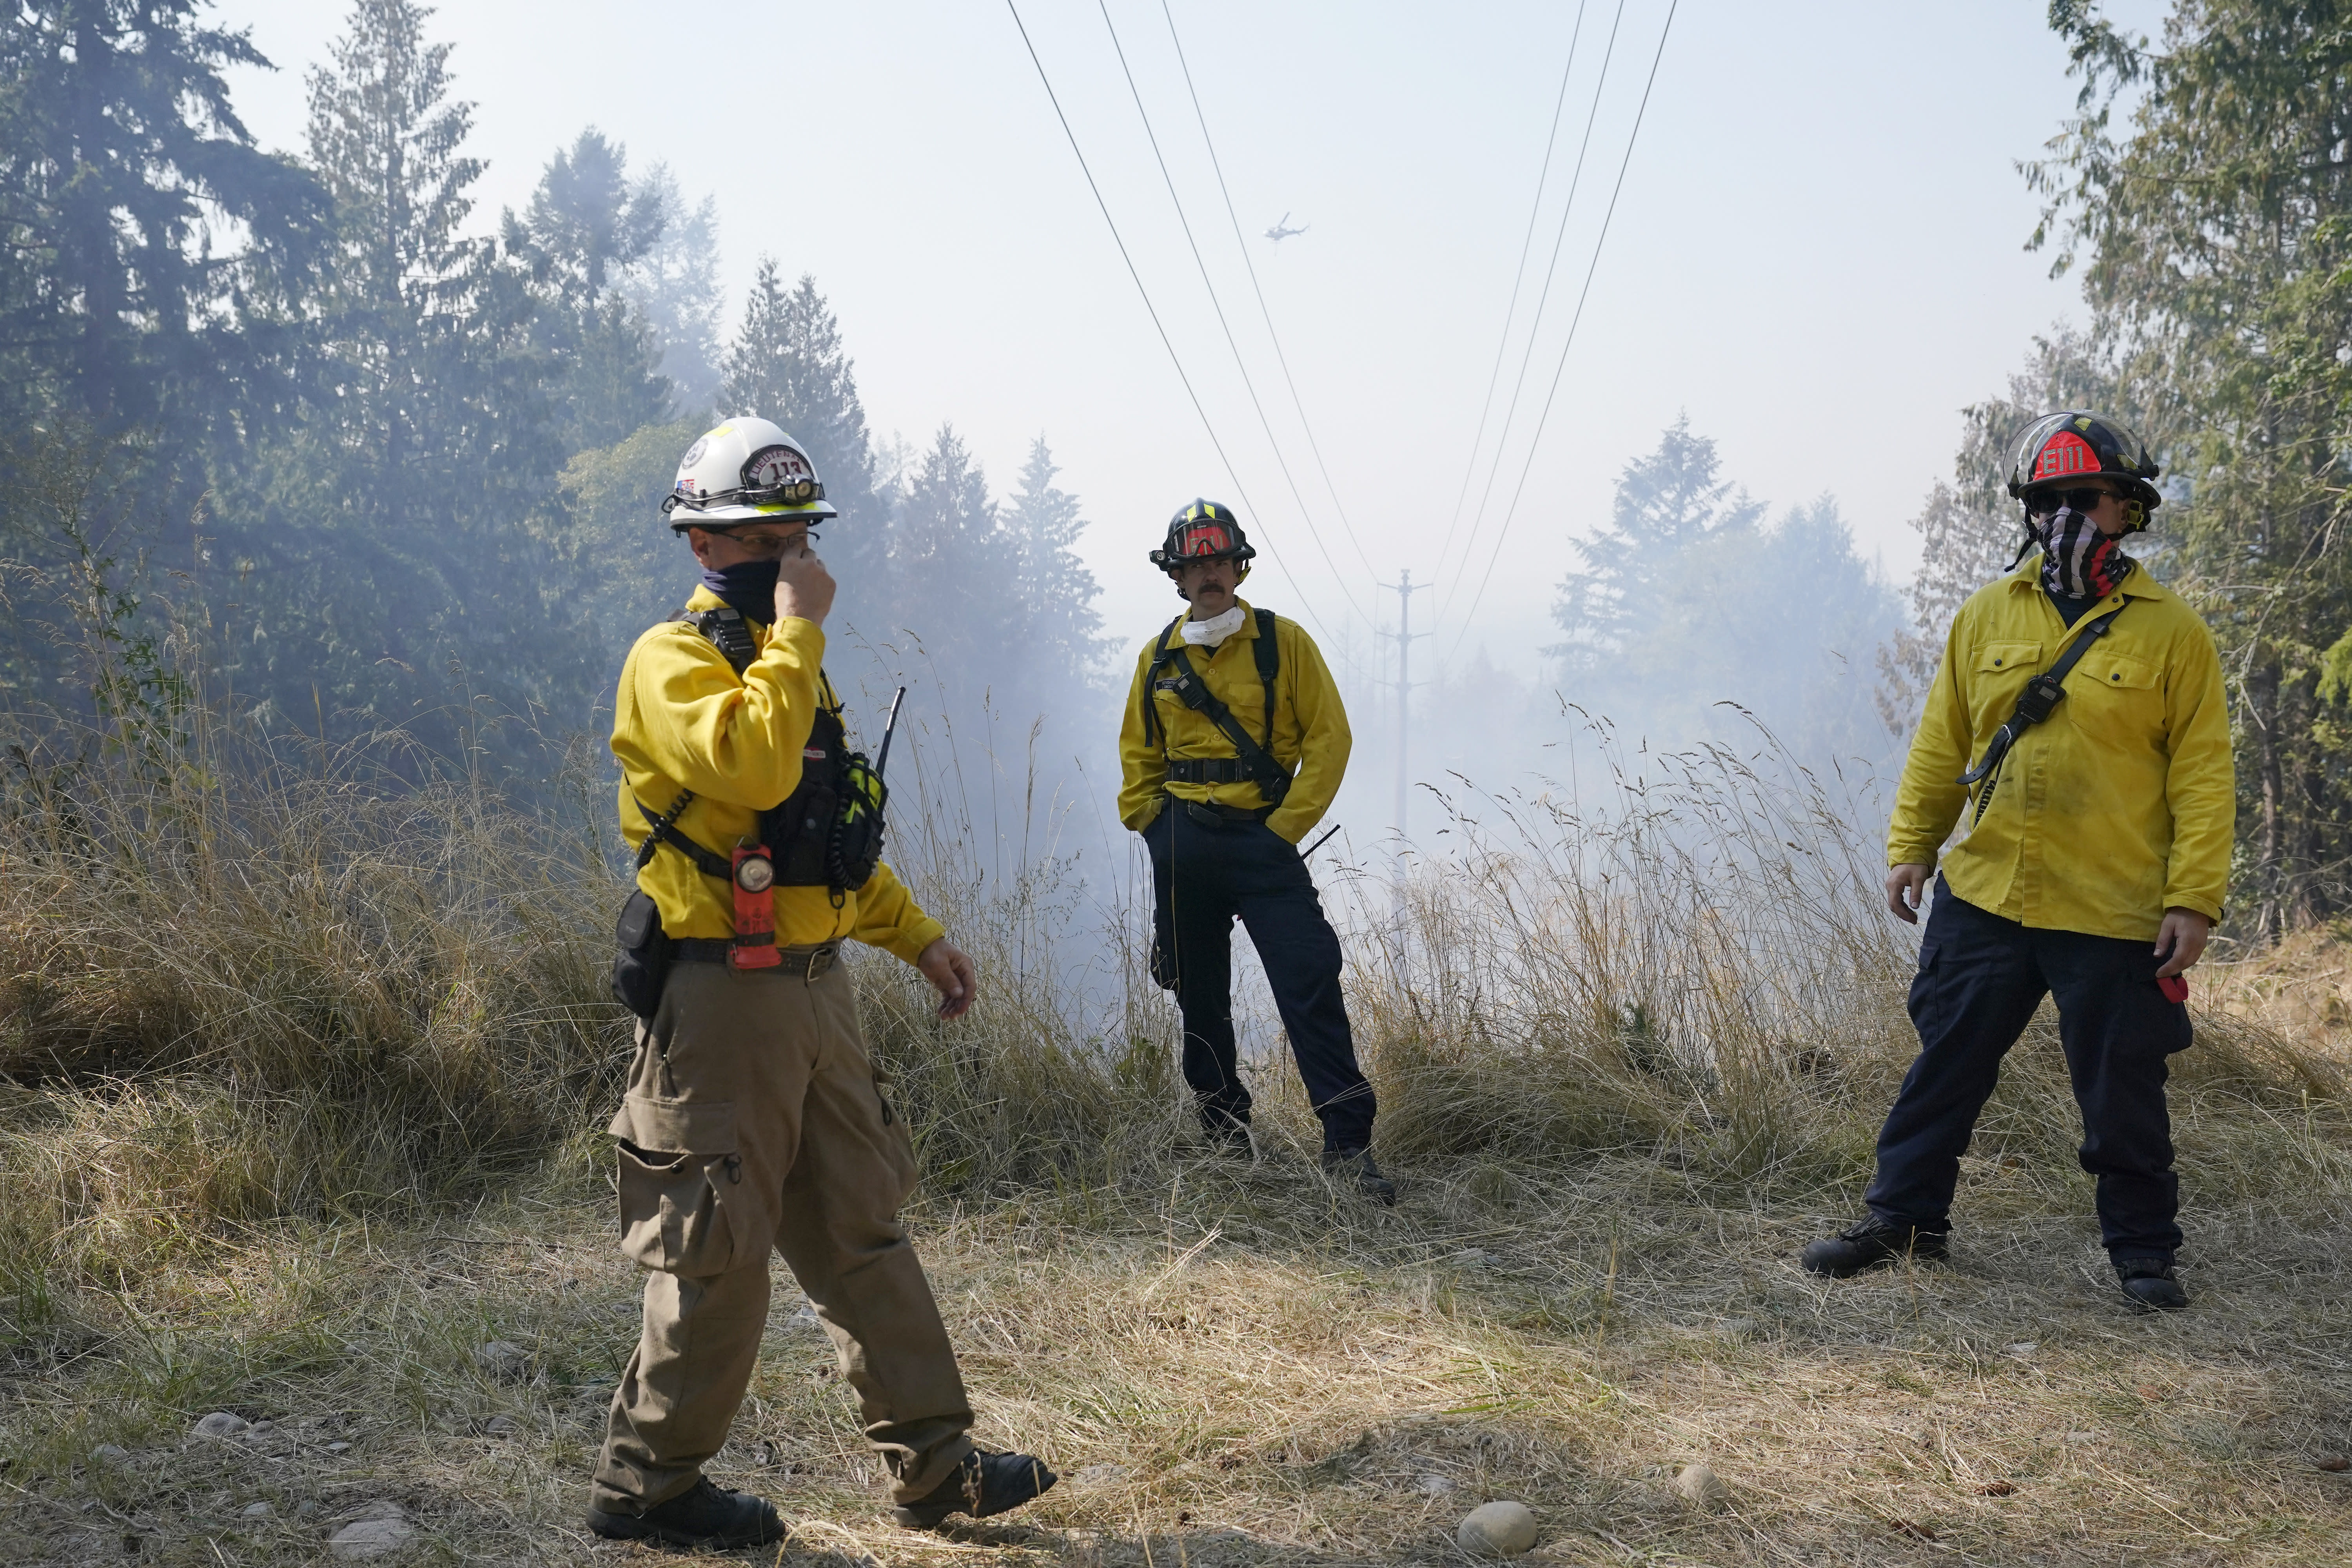 Firefighters wait under power lines for a helicopter to make a water drop, Wednesday, Sept. 9, 2020, on a hotspot of a wildfire burning in Bonney Lake, Wash., south of Seattle. (AP Photo/Ted S. Warren, Pool)